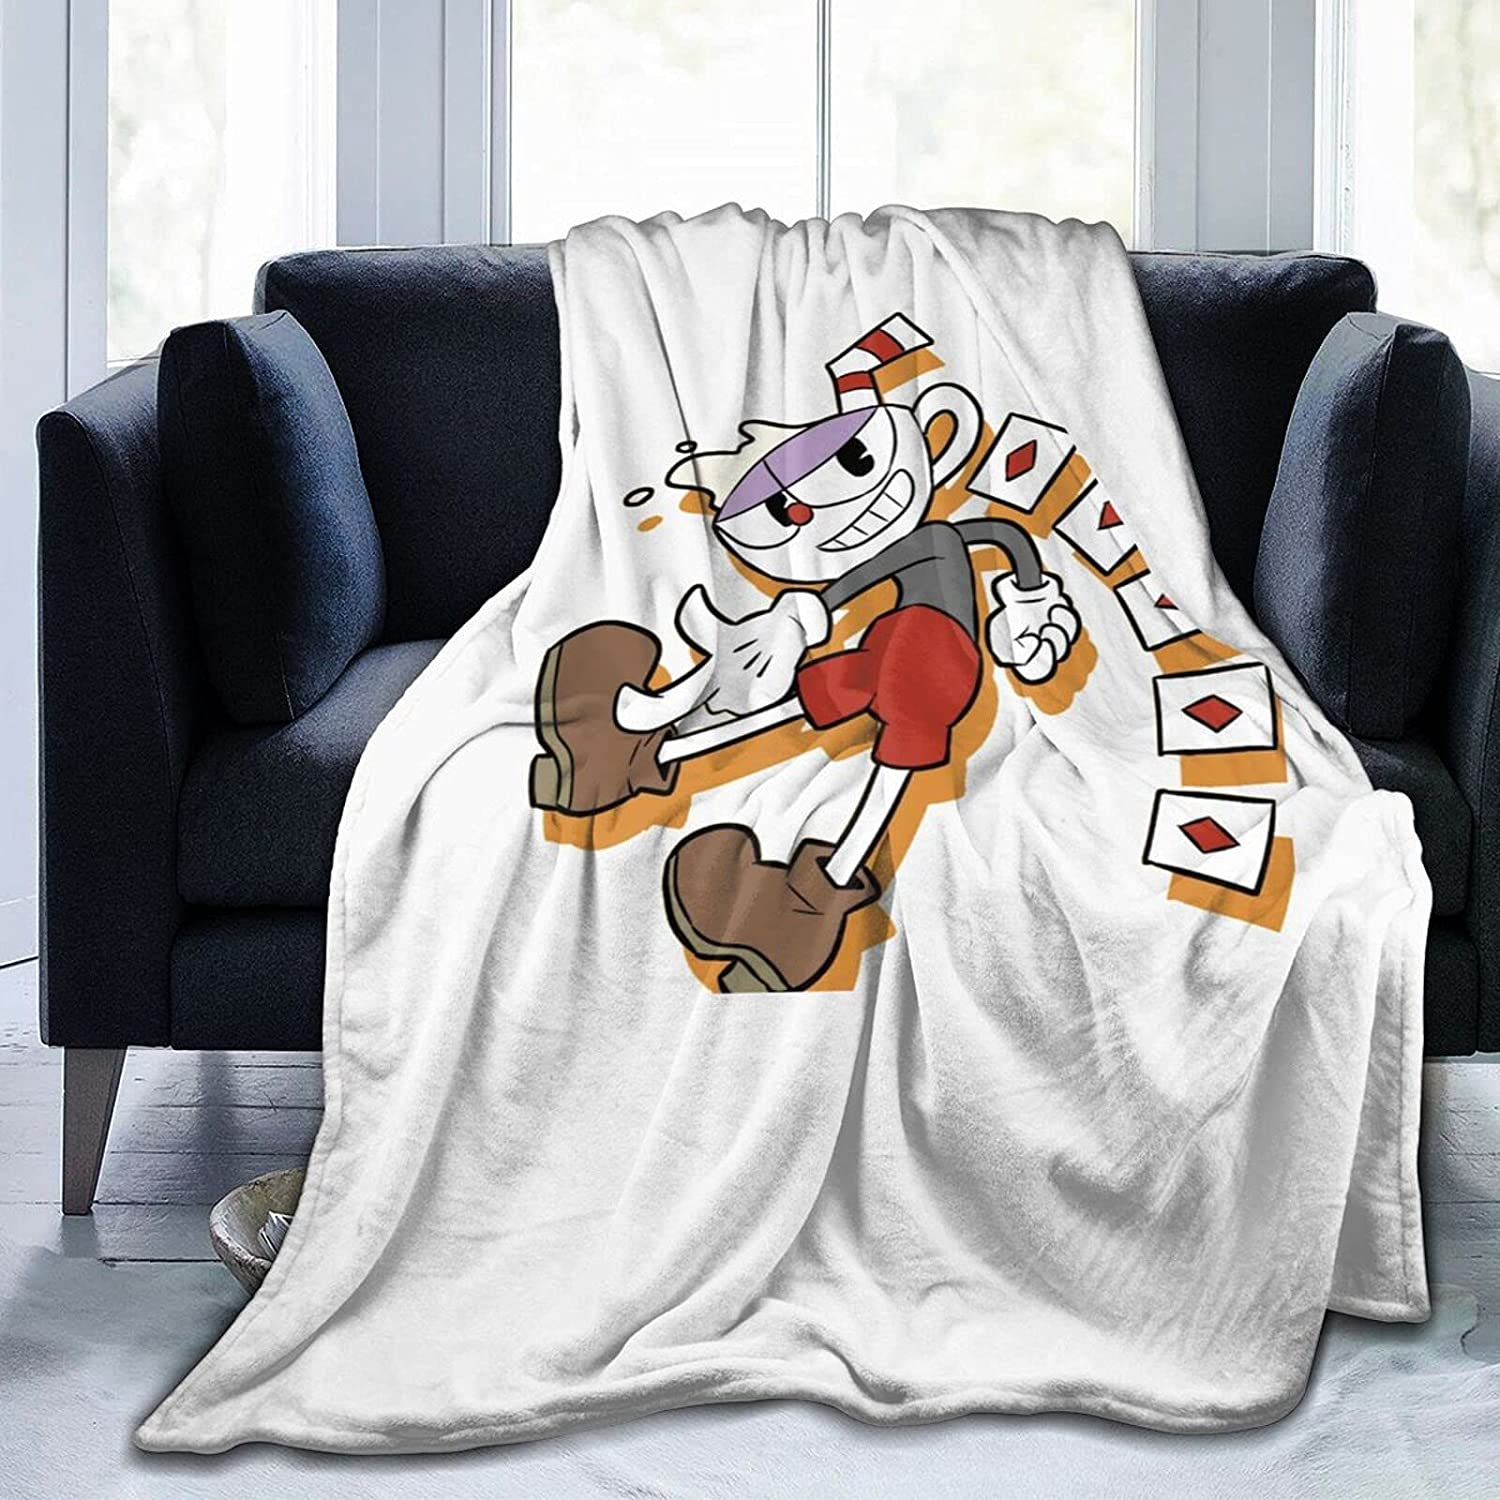 Cup-Head Blanket Set Kids Adult Directly managed store Max 56% OFF Anti-Pilli Comfy Quilt Warm Soft